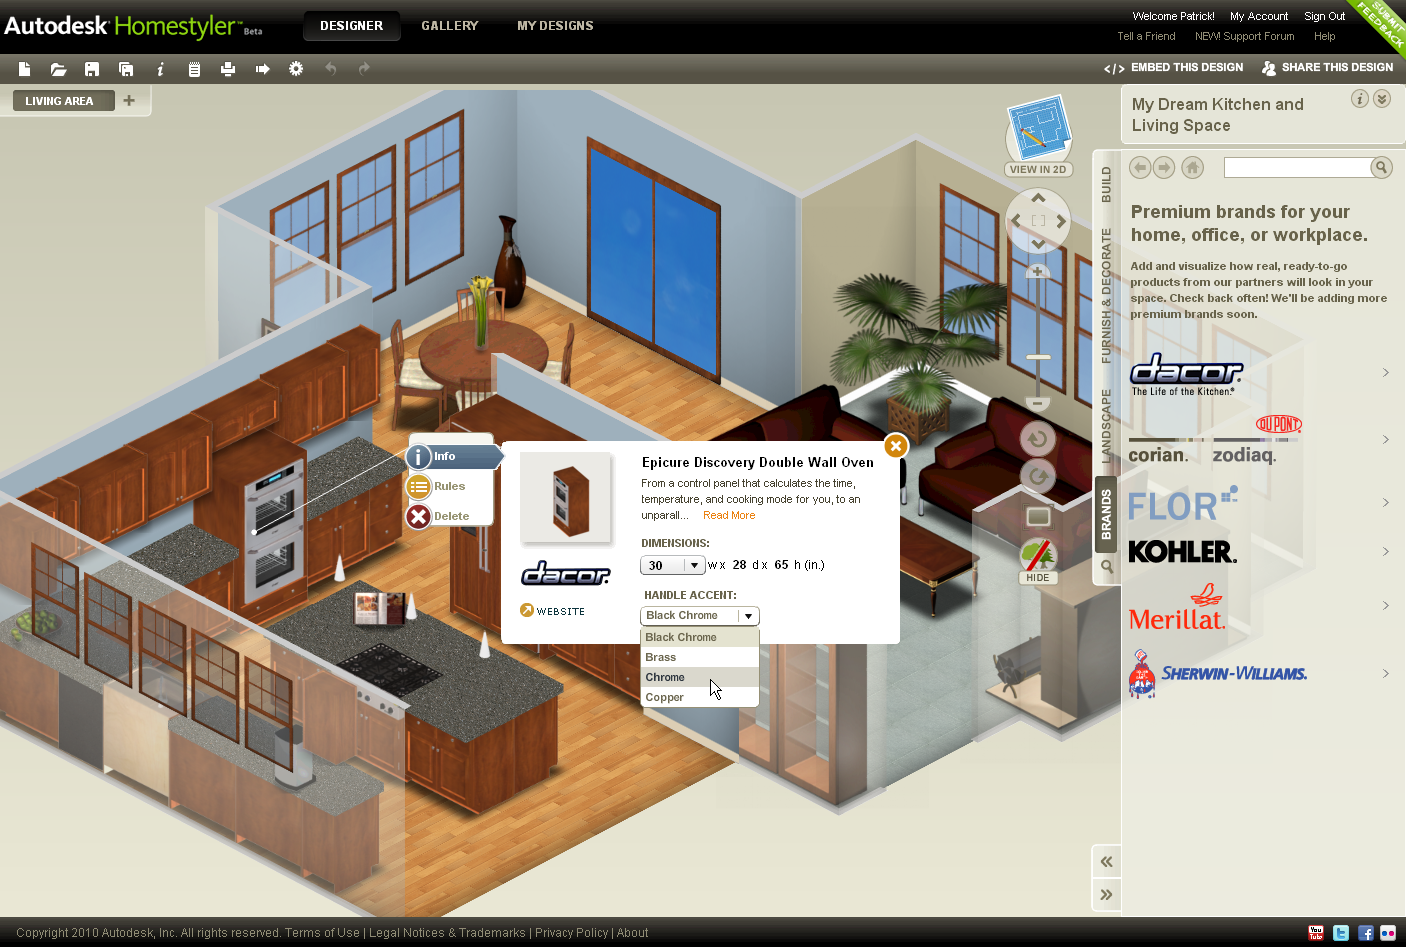 autodesk launches easy to use free 2d and 3d online home